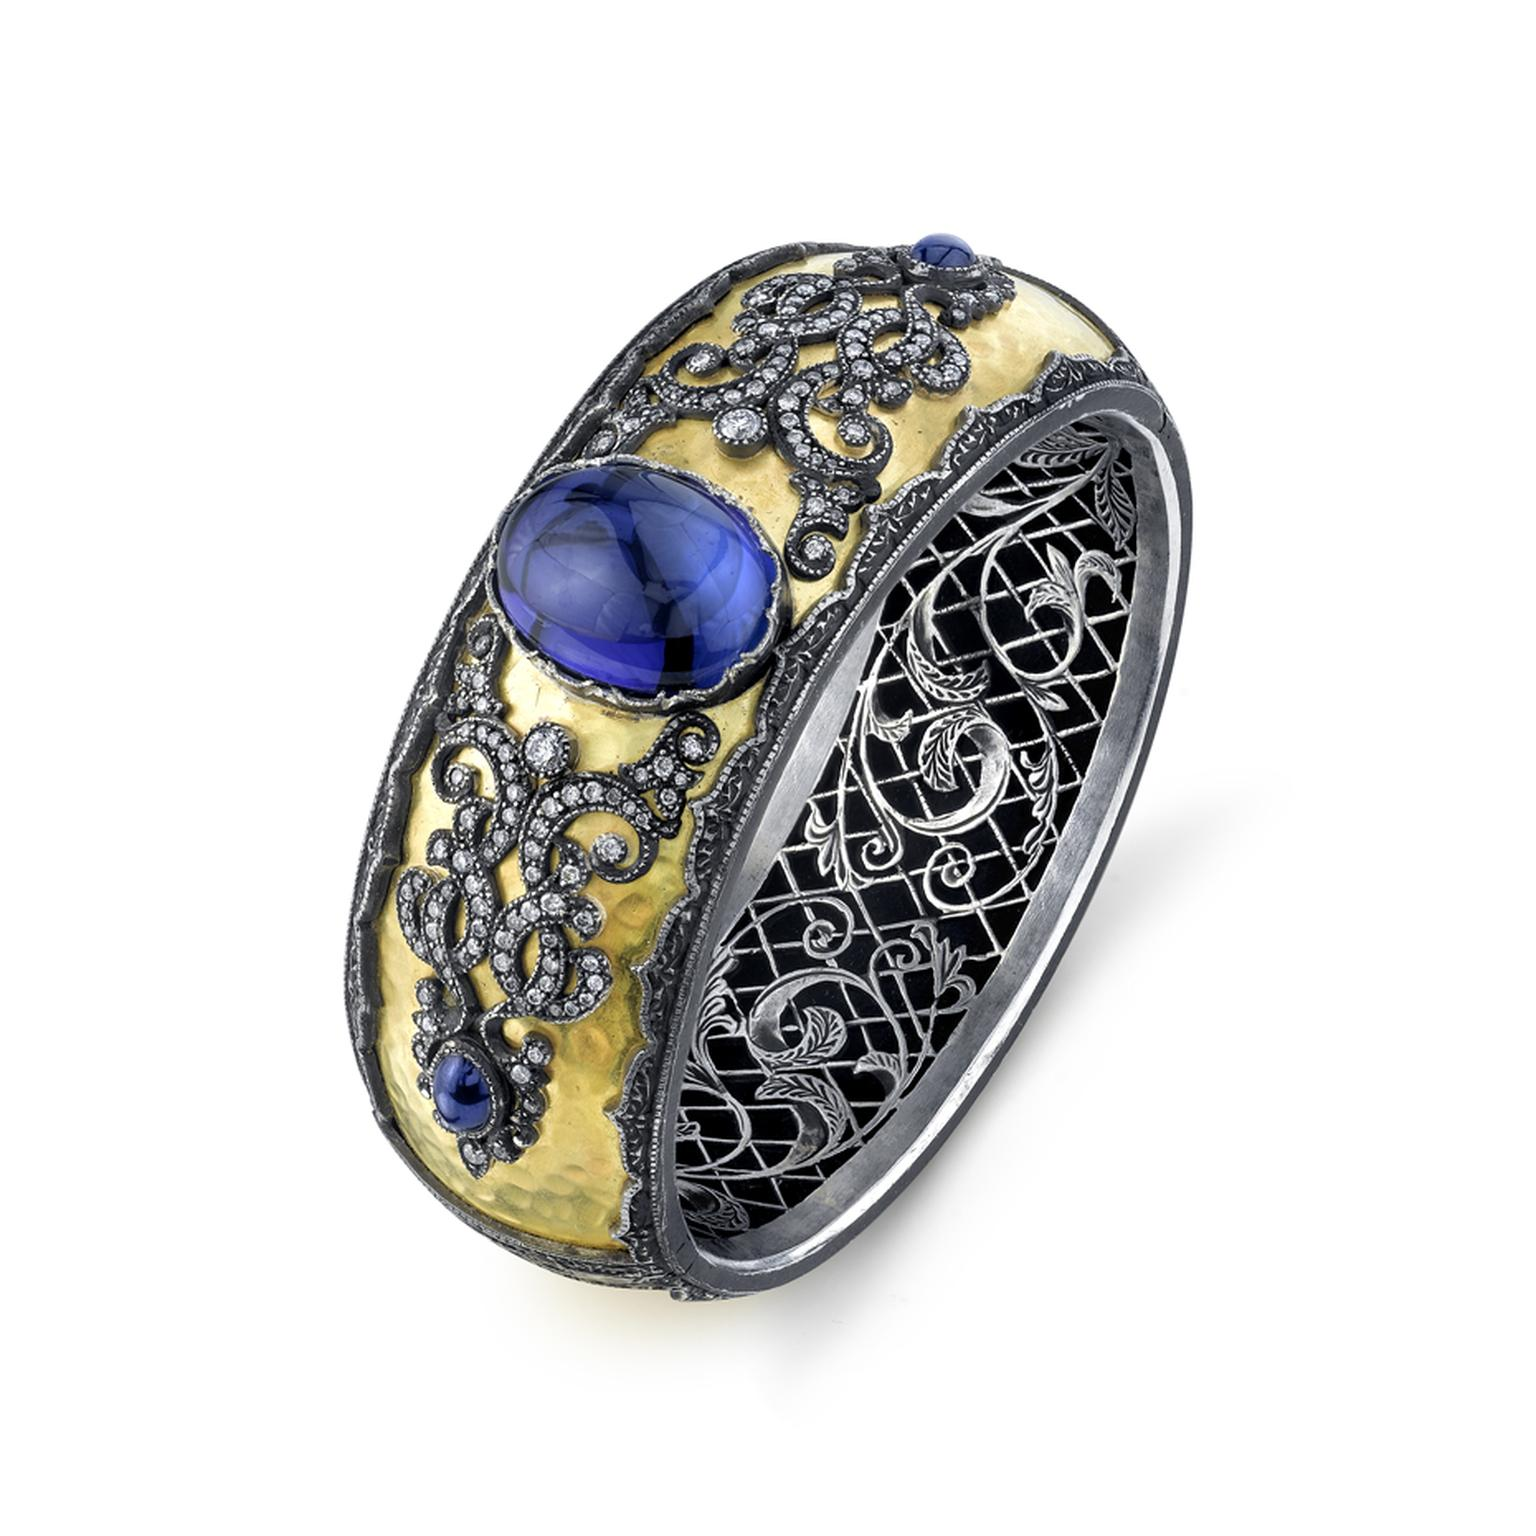 Arman Sarkisyan gold cuff with tanzanite, diamonds and oxidised silver